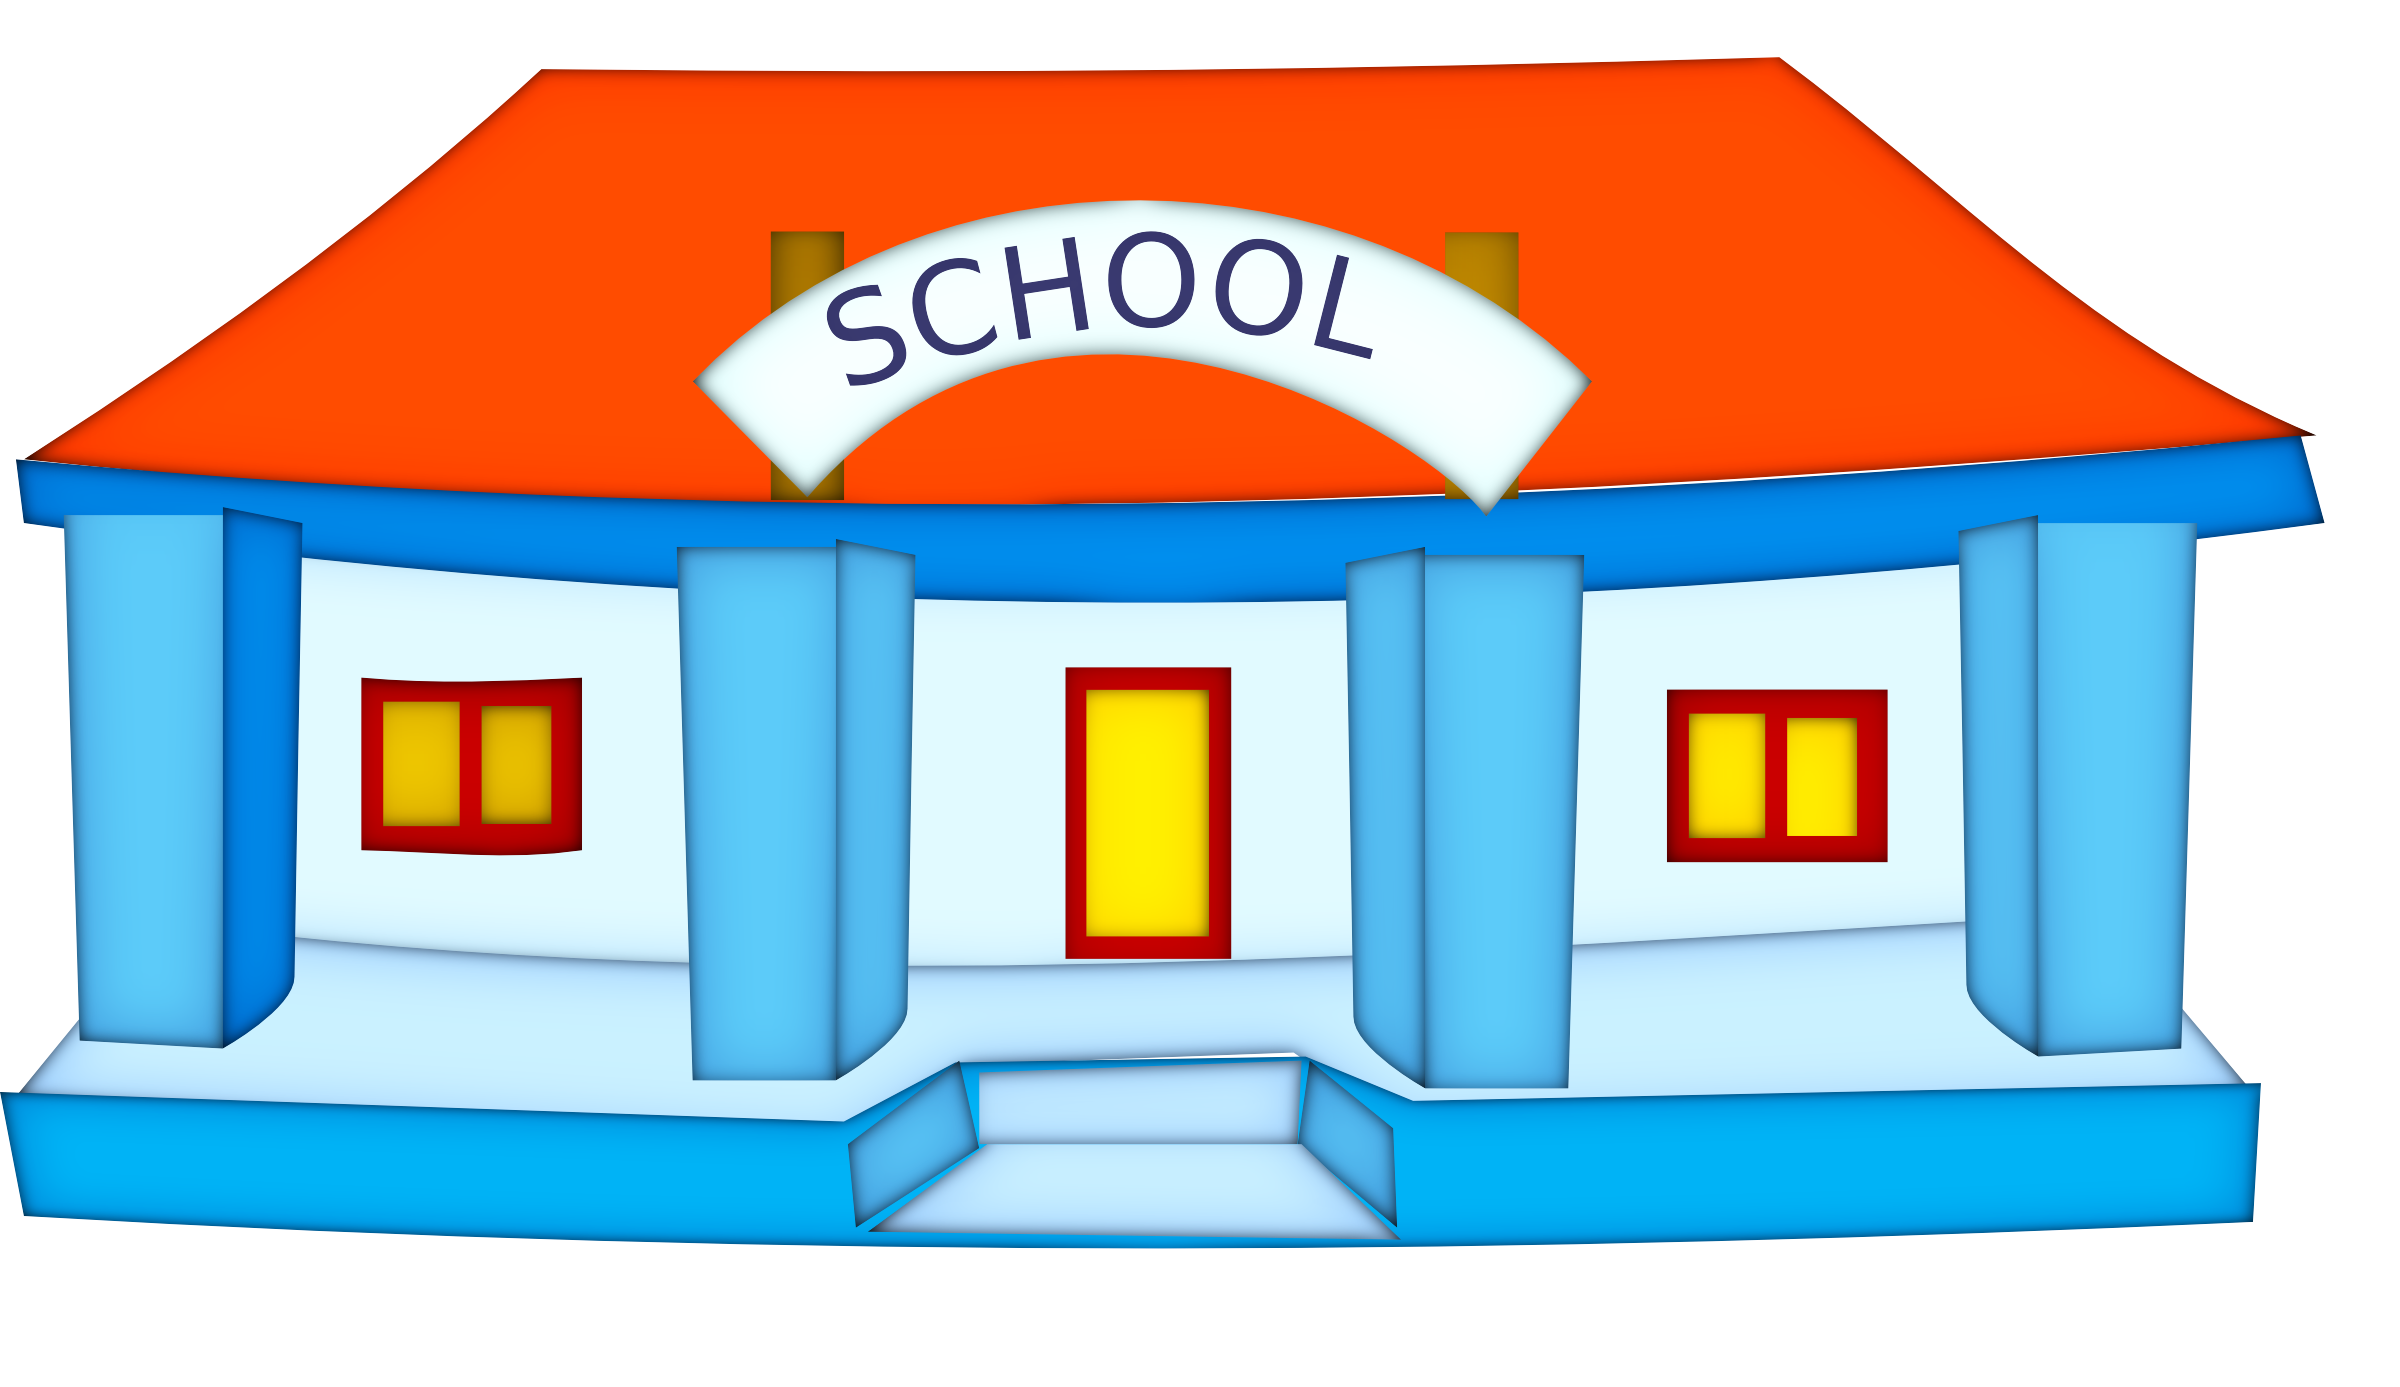 clipart school background - photo #5